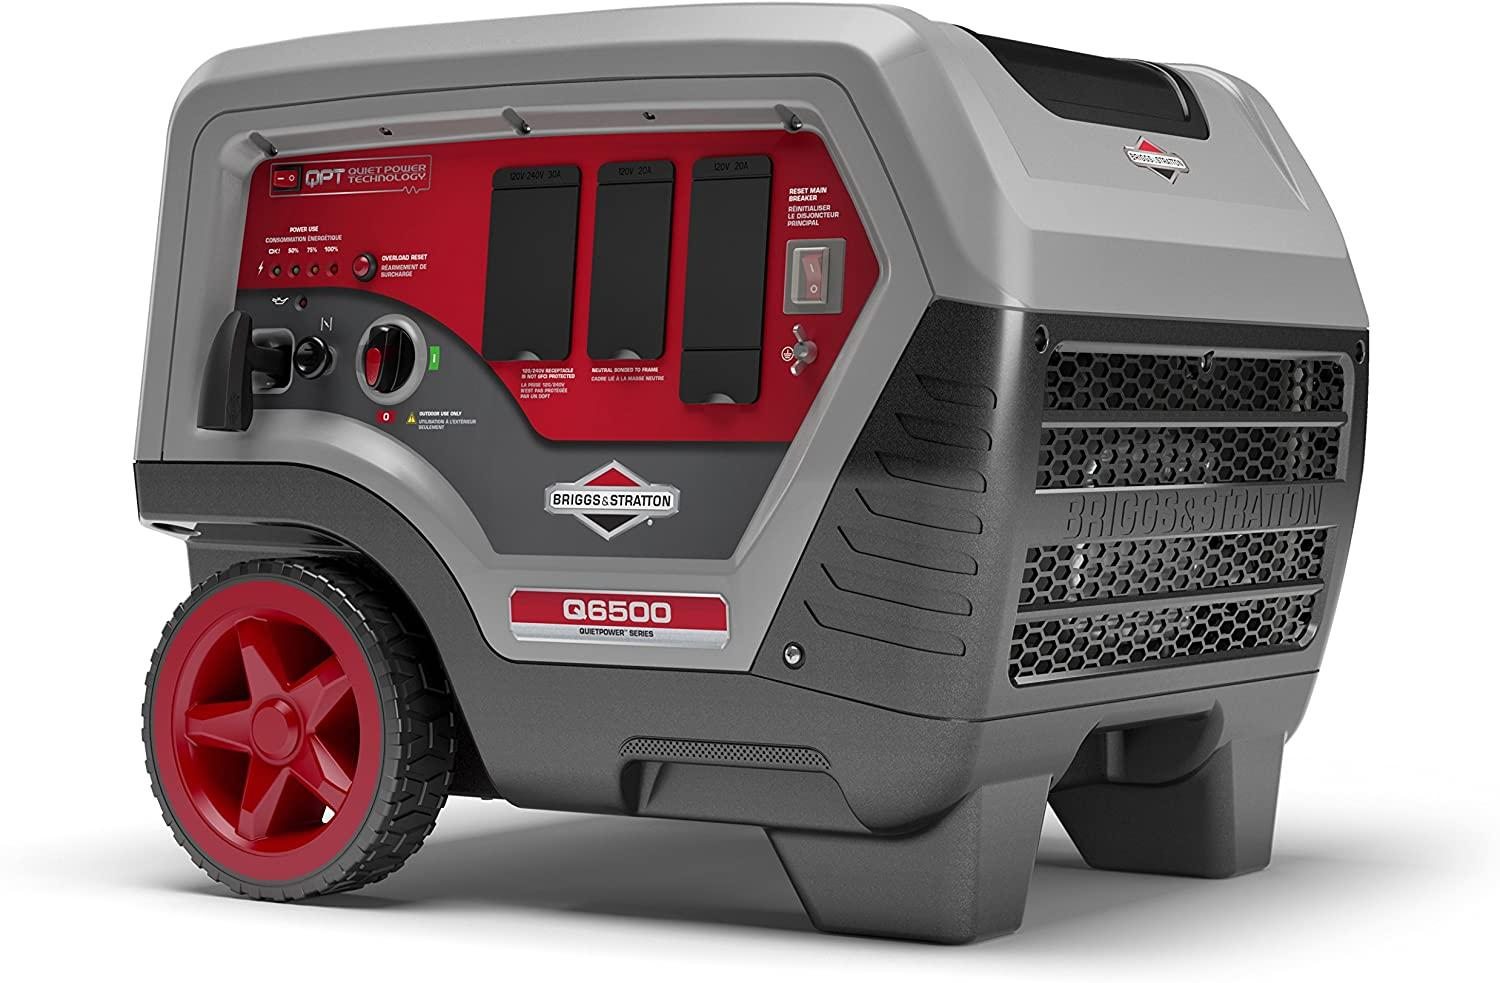 BRIGGS AND STRATTON 30675 Q6500 INVERTER GENERATOR